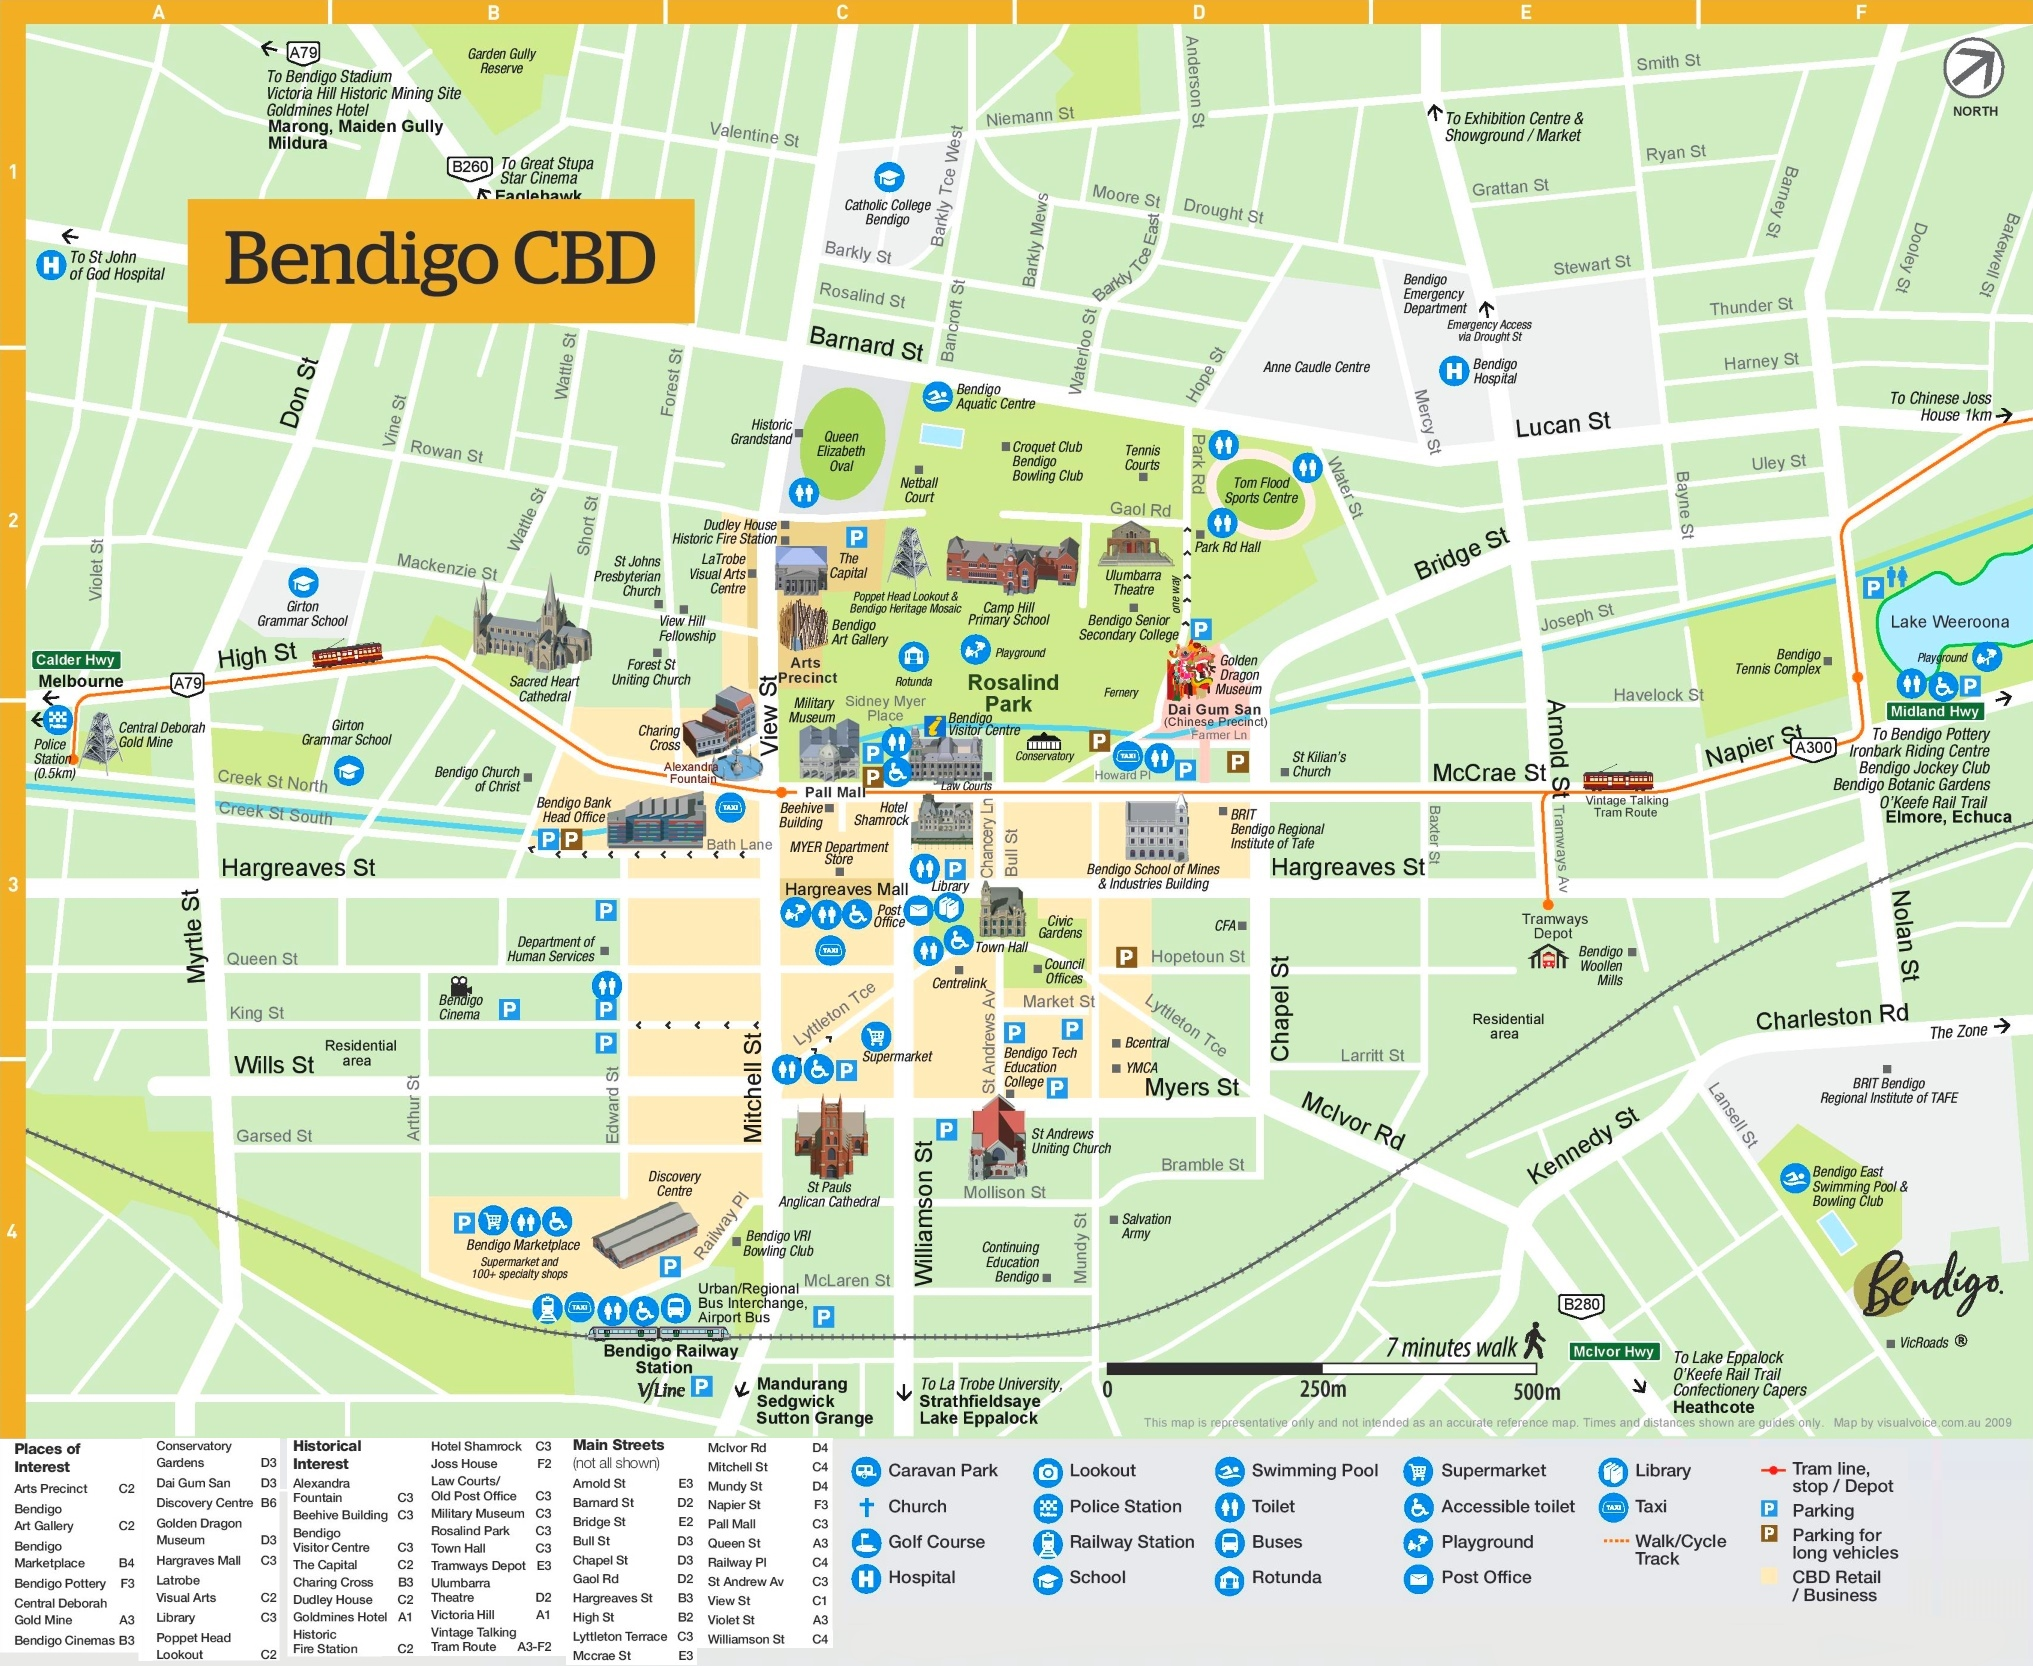 Bendigo sightseeing map